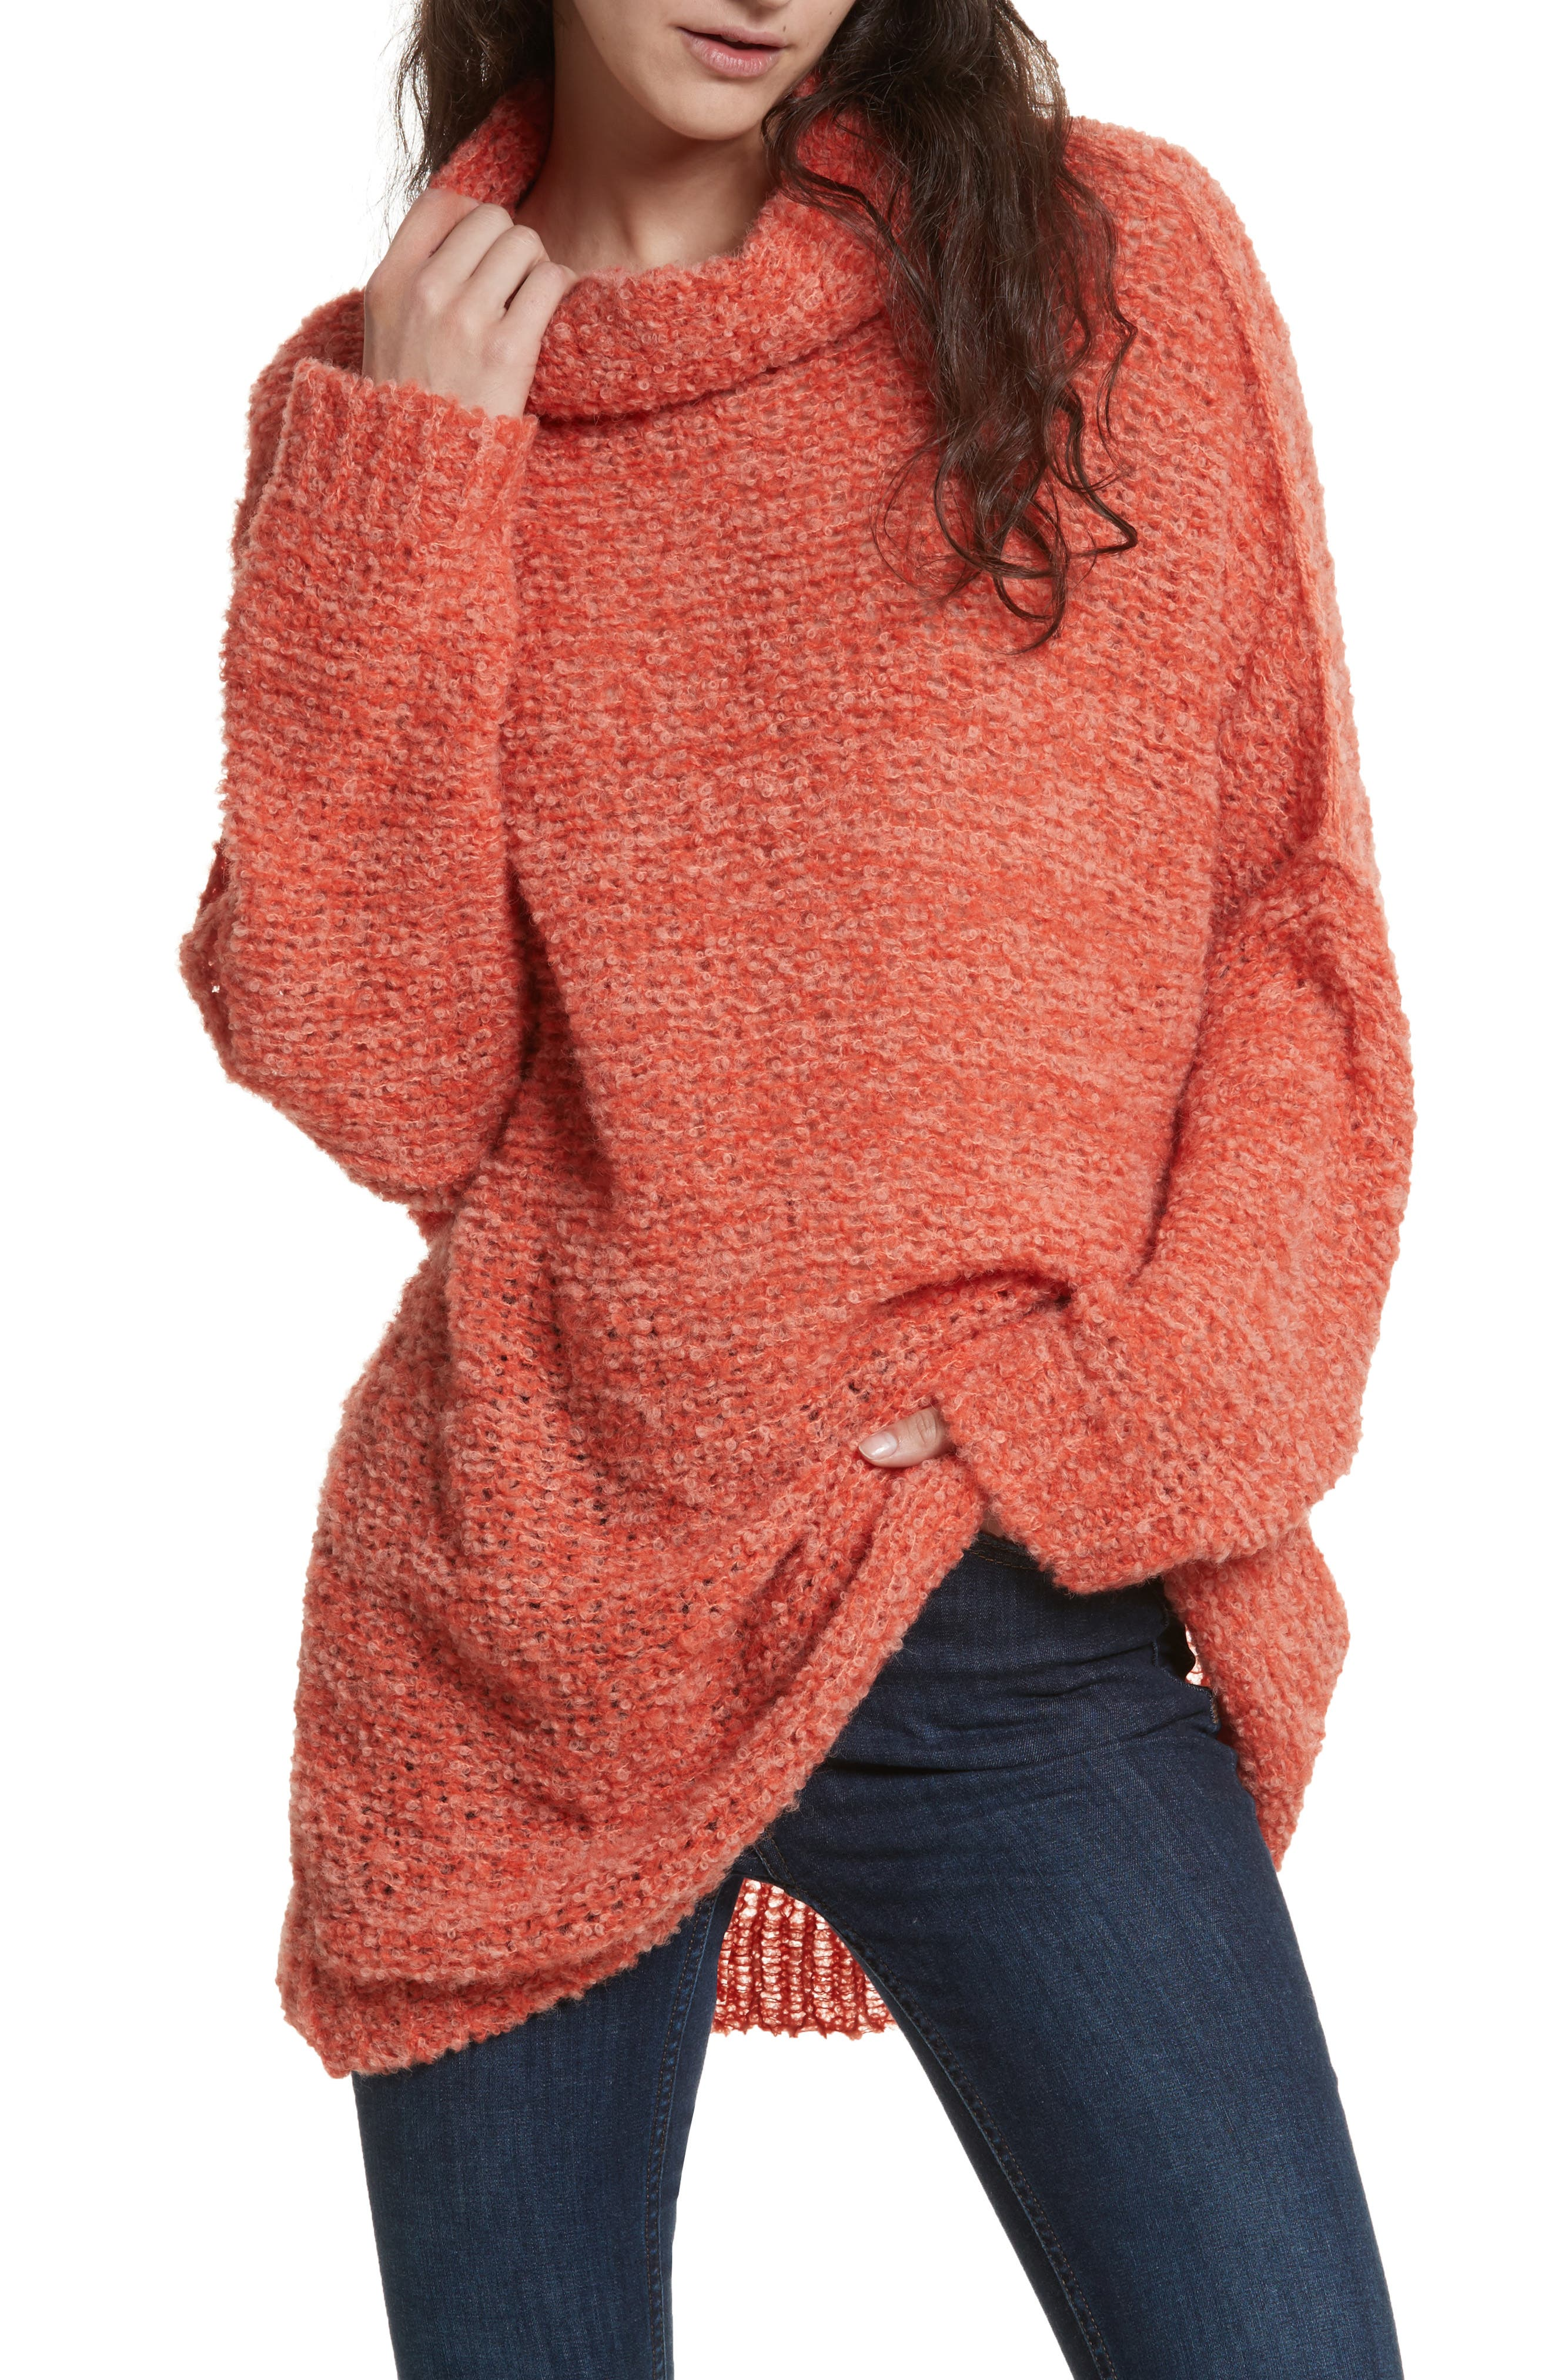 FREE PEOPLE, 'She's All That' Knit Turtleneck Sweater, Main thumbnail 1, color, 800